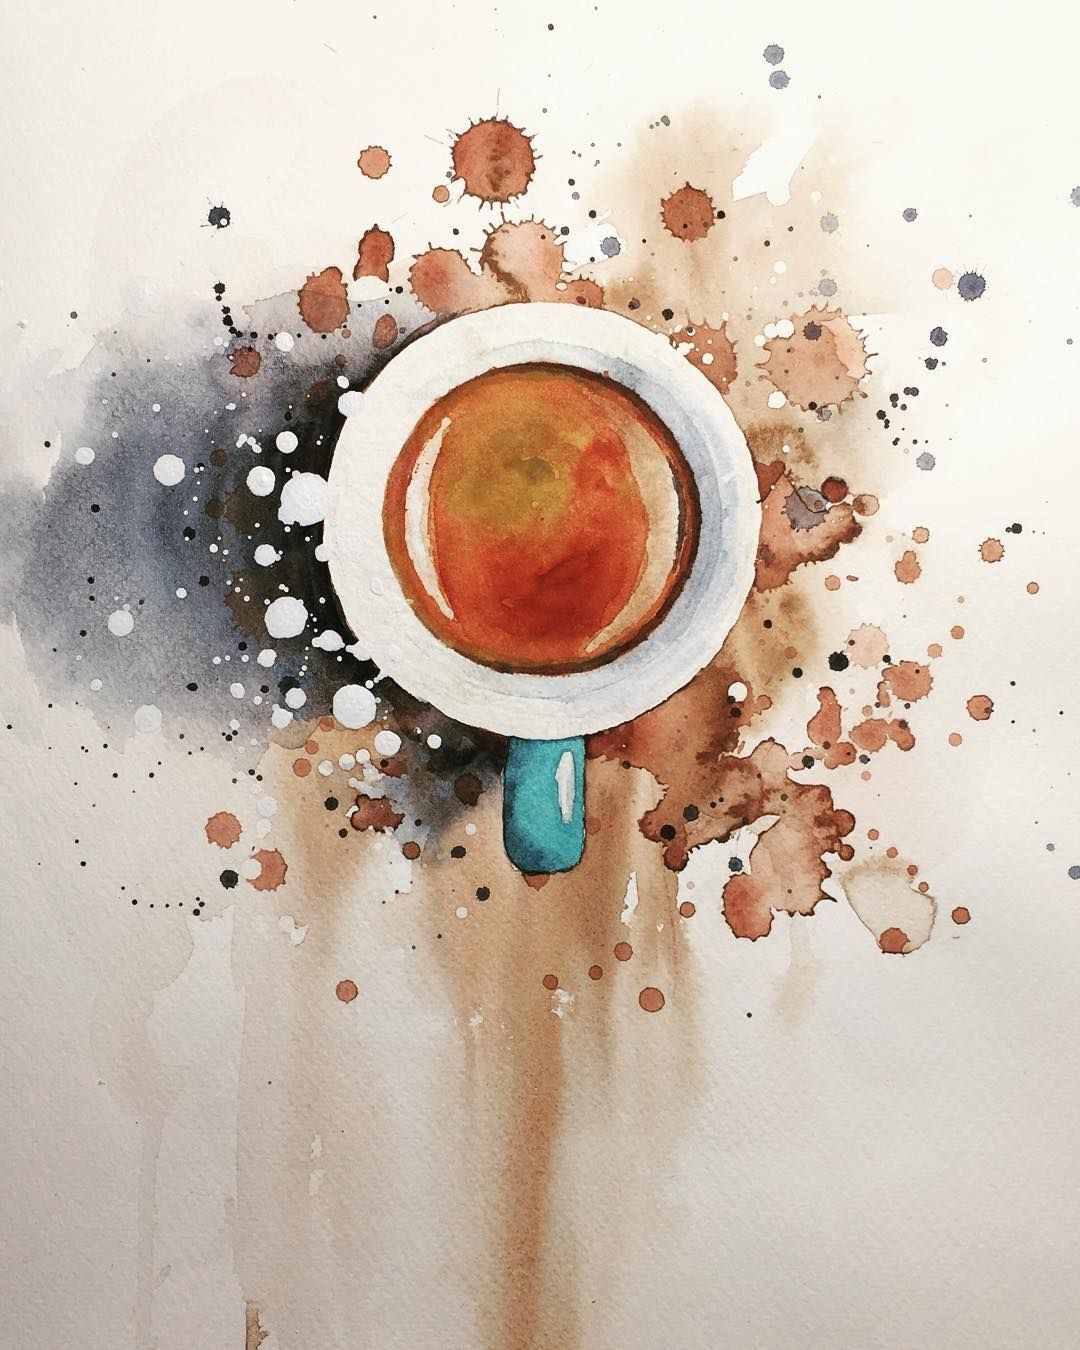 1080x1350 Watercolor Espresso, Coffee, Watercolour, Painting By Jiri Zraly